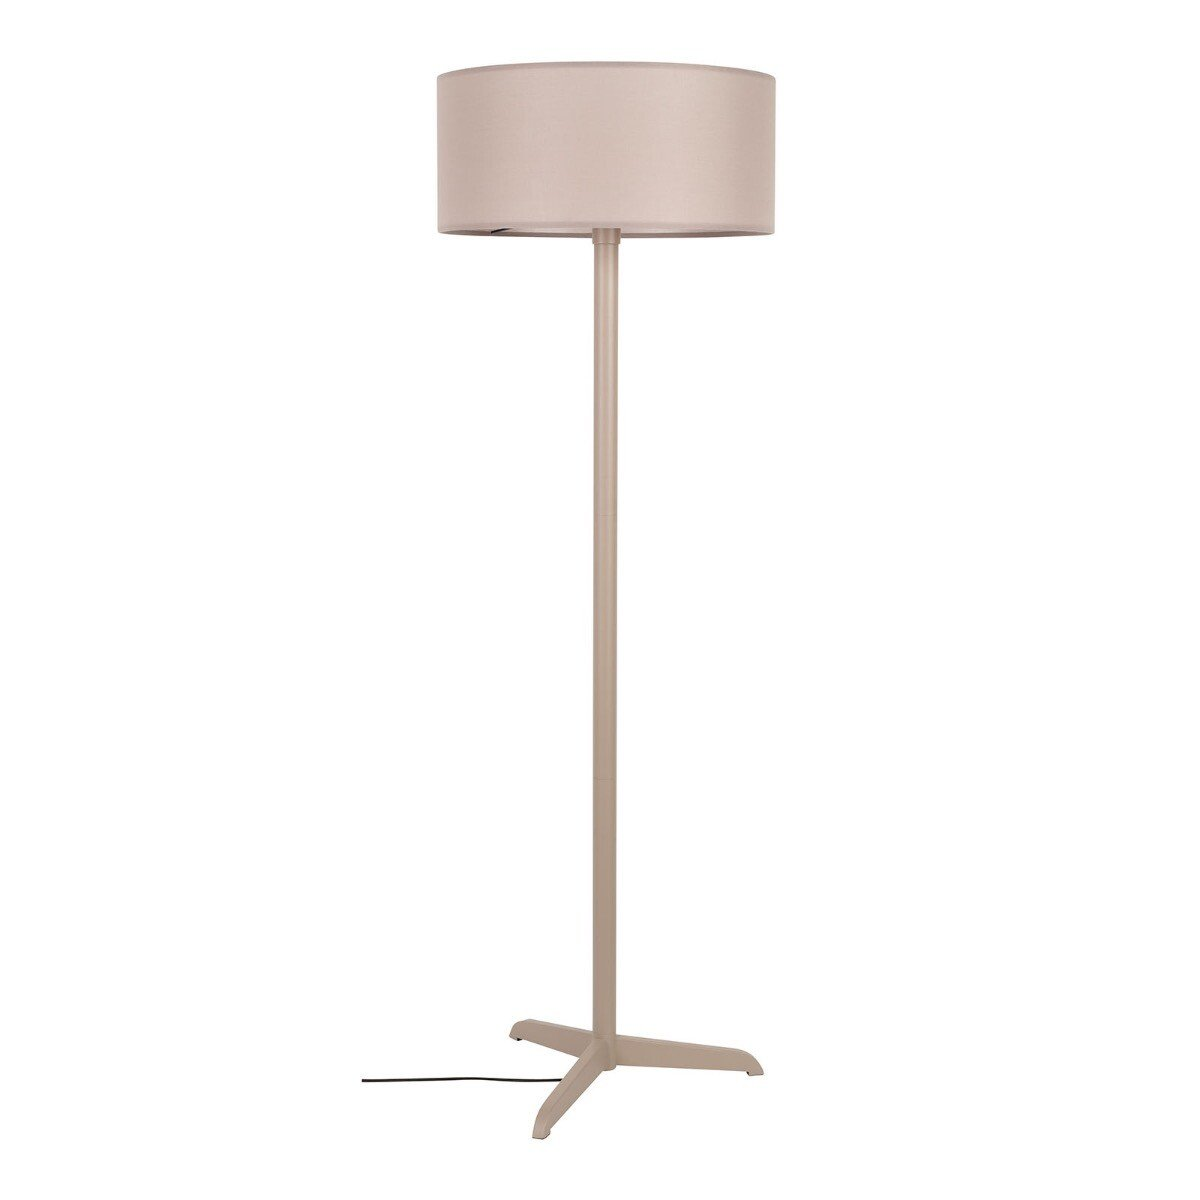 Zuiver vloerlamp Shelby taupe 155 x � 50